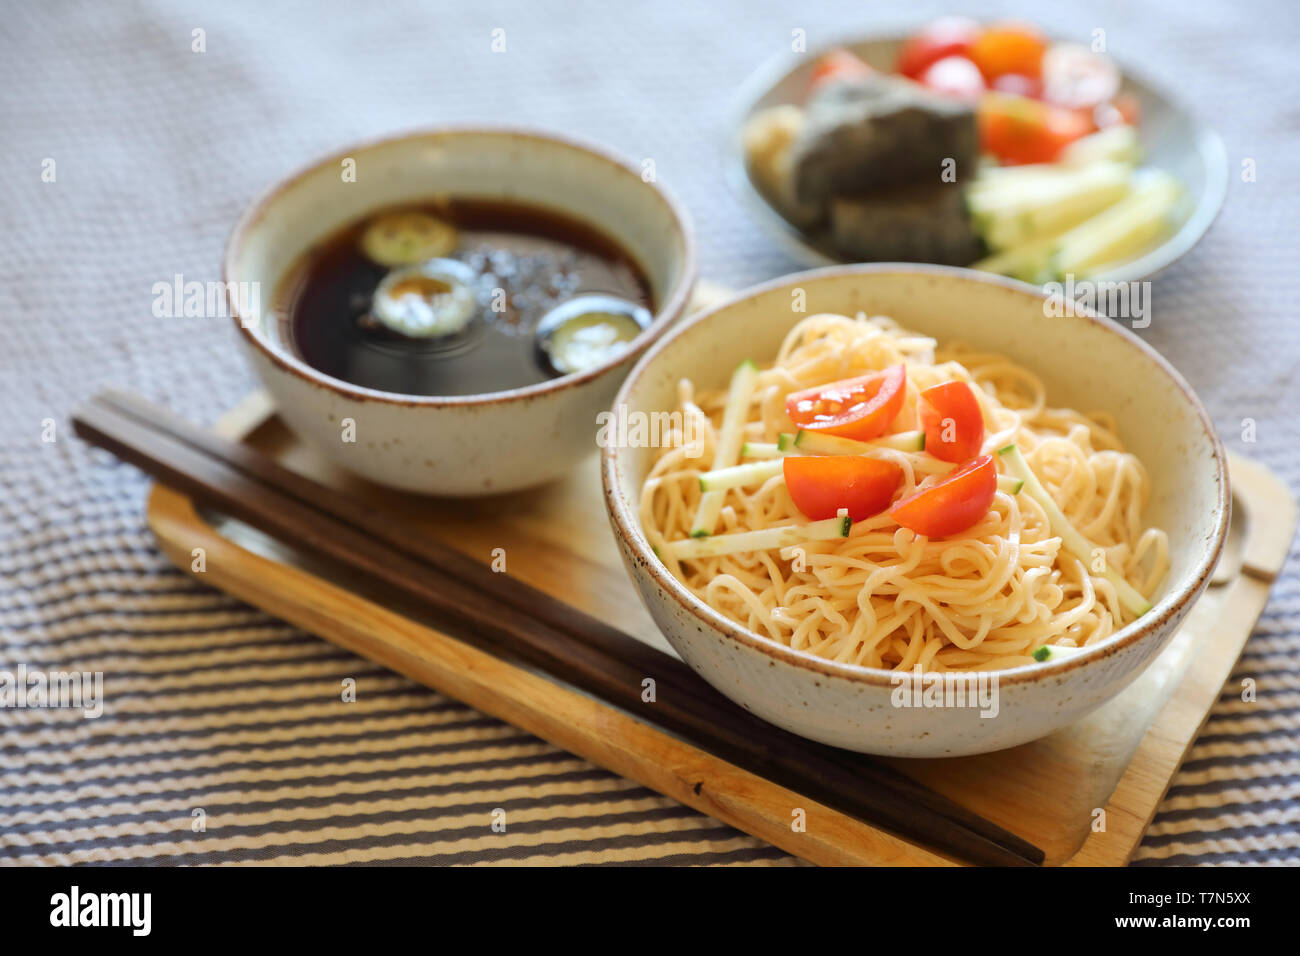 Cold noodles japanese food style Stock Photo